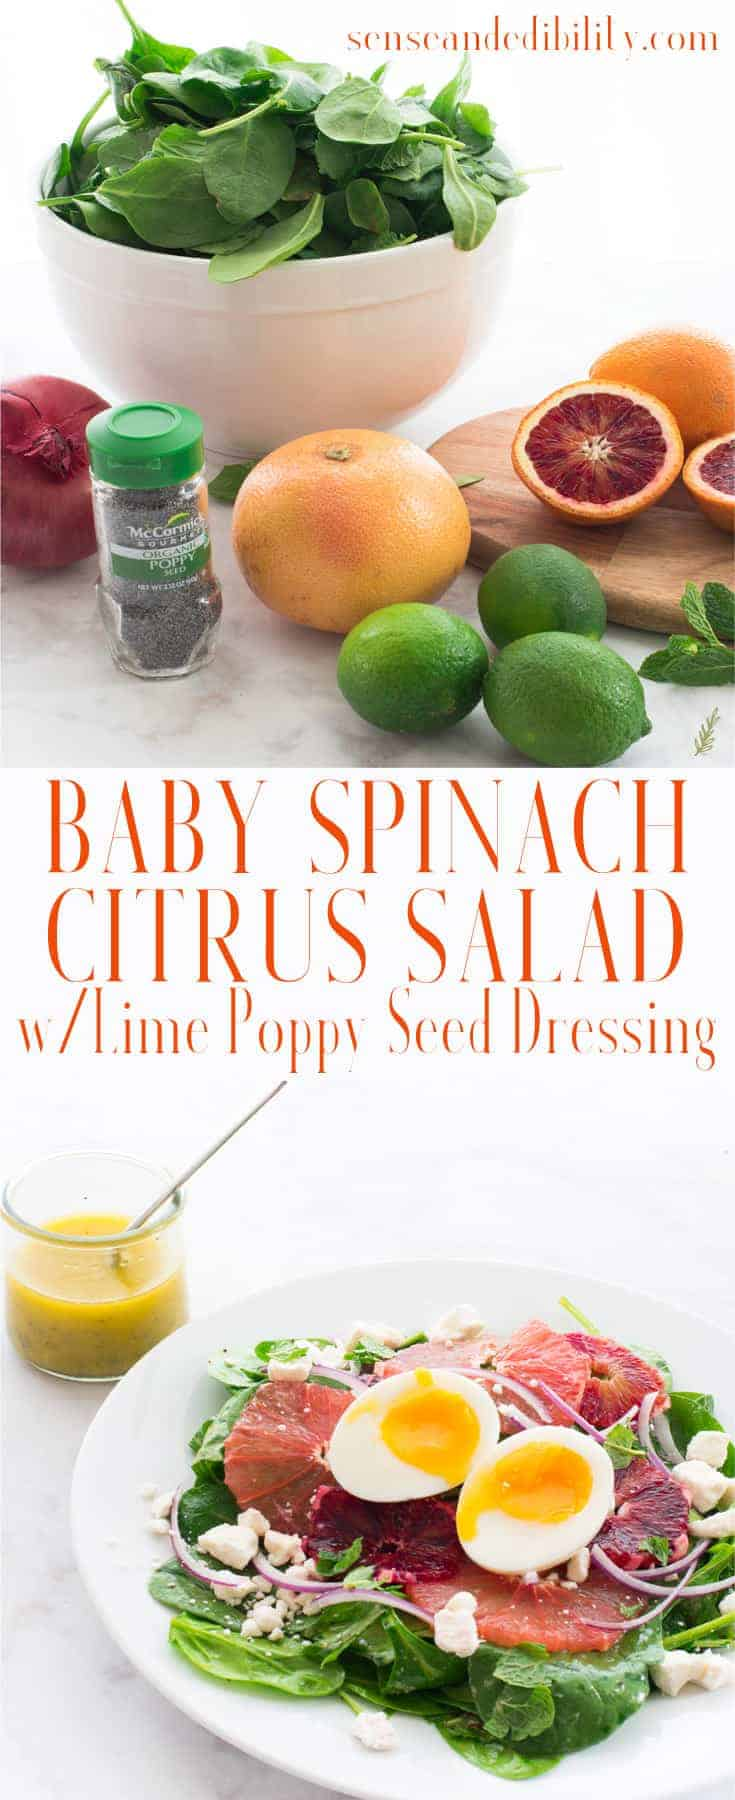 Sense & Edibility's Baby Spinach Citrus Salad with Lime Poppy Seed Dressing Pin